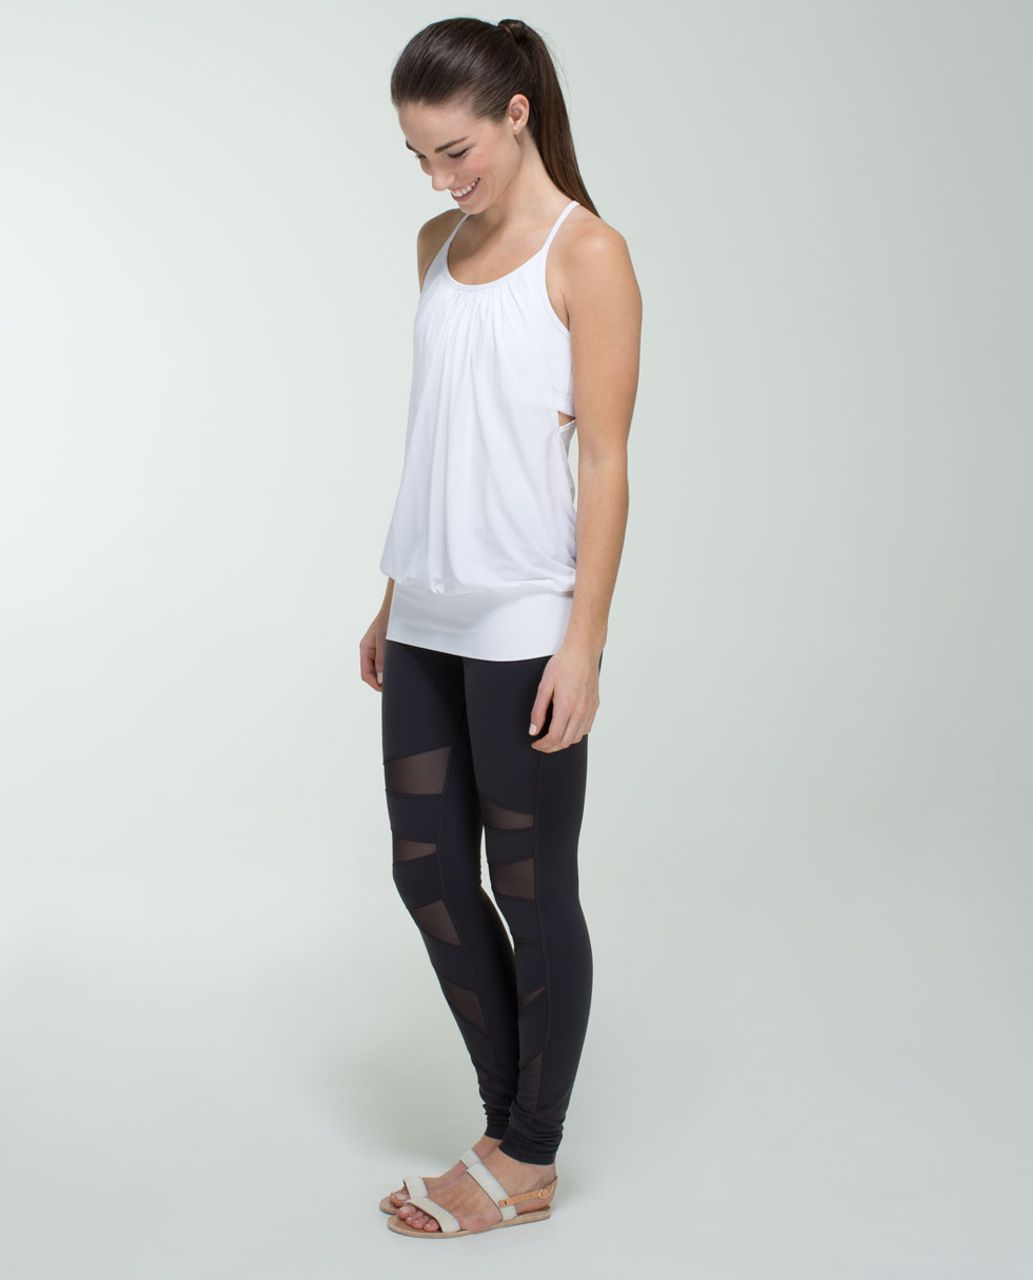 Lululemon No Limits Tank - White